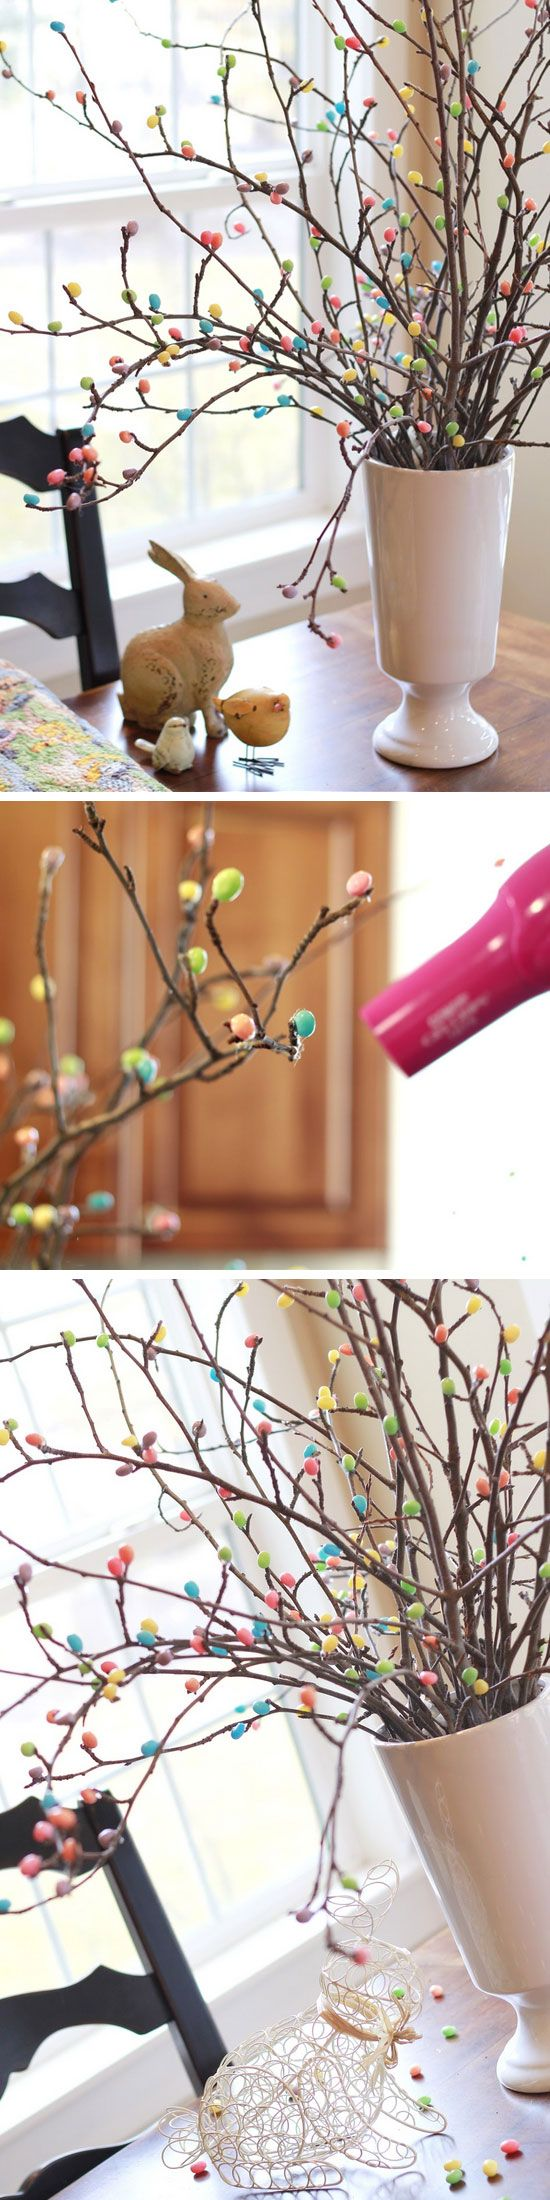 17 Best Ideas About Easter Tree On Pinterest Diy Easter